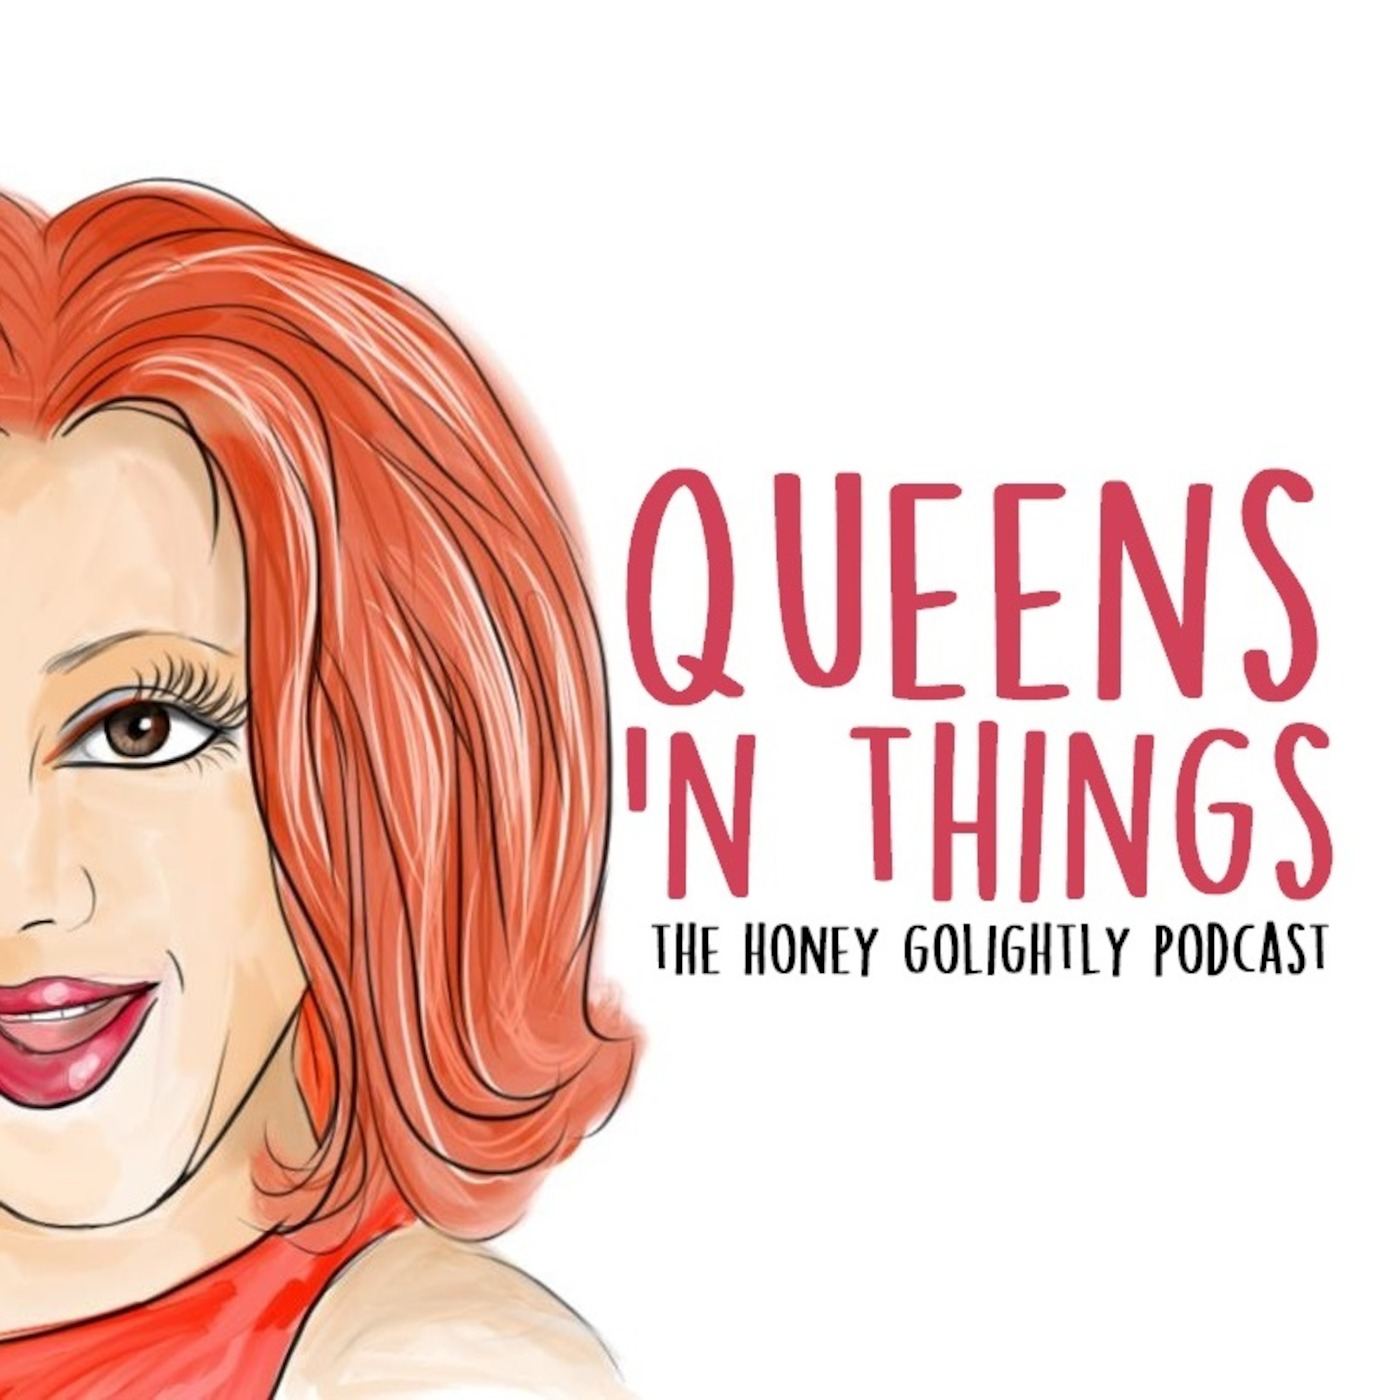 Queens 'N Things